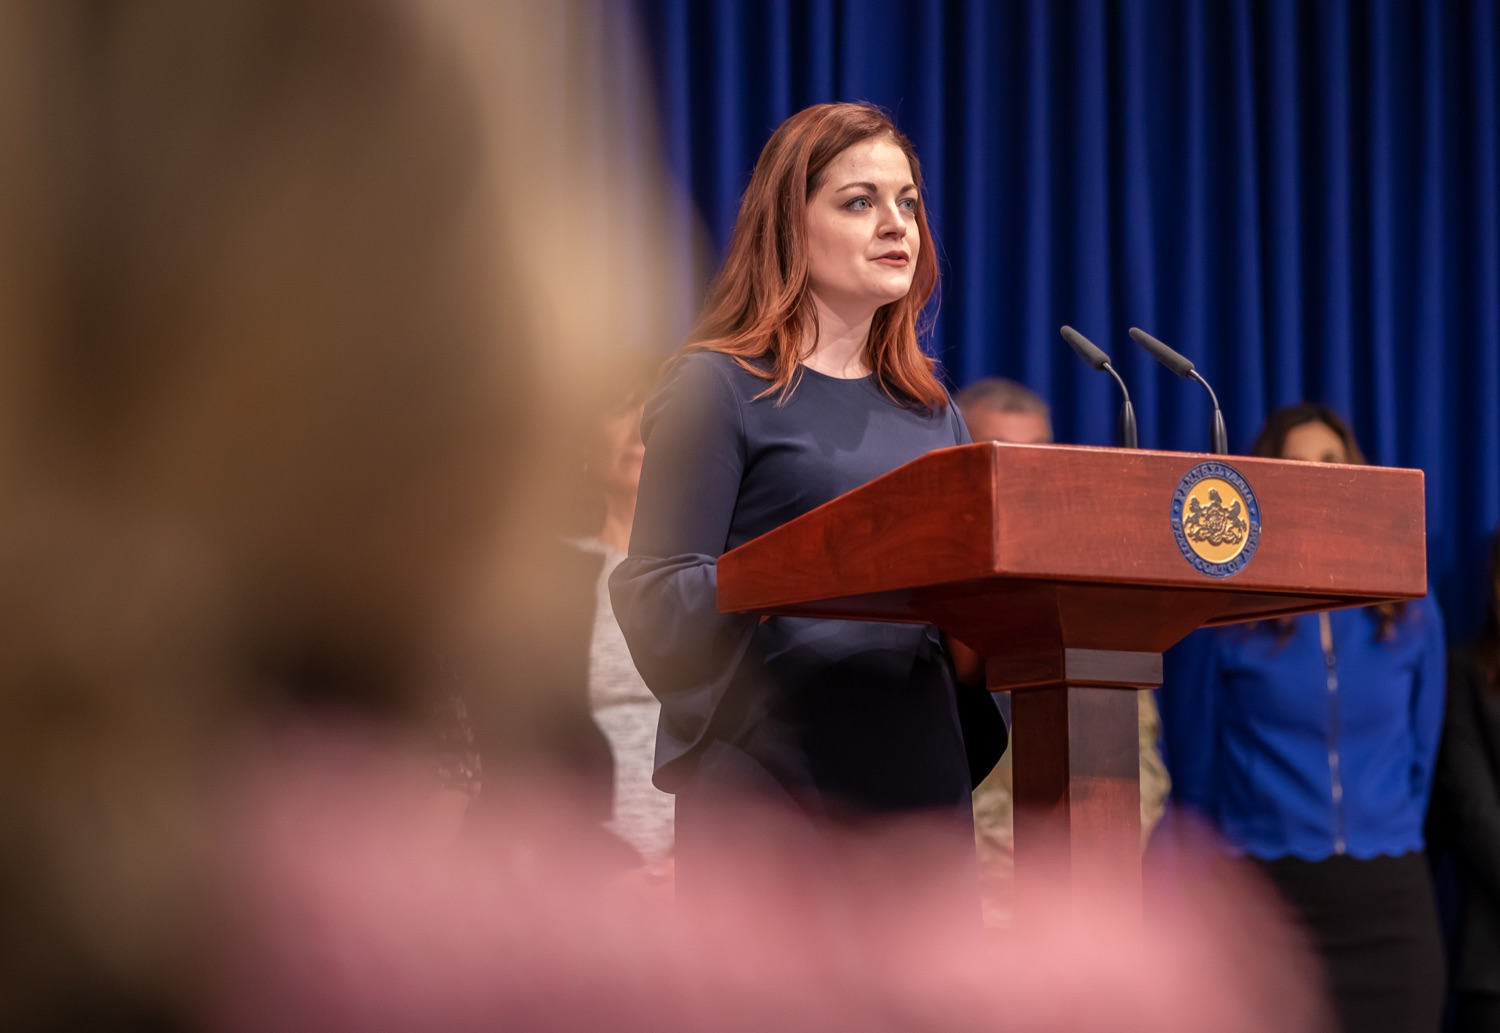 """<a href=""""https://filesource.wostreaming.net/commonwealthofpa/photo/17711_DHS_SuicidePrevention_AG_13.jpg"""" target=""""_blank"""">⇣Download Photo<br></a>Harrisburg, PA.  Caitlin Palmer of the Department of Human Services, speaks at todays event discussing the initial report of Pennsylvanias Suicide Prevention Task Force based on the statewide listening sessions held throughout fall 2019. The work of the Suicide Prevention Task Force is a complement to the goals and strategies surrounding the governors Reach Out PA: Your Mental Health Matters initiative announced earlier this month and his Executive Order to protect vulnerable populations signed last year.  January 14, 2020."""